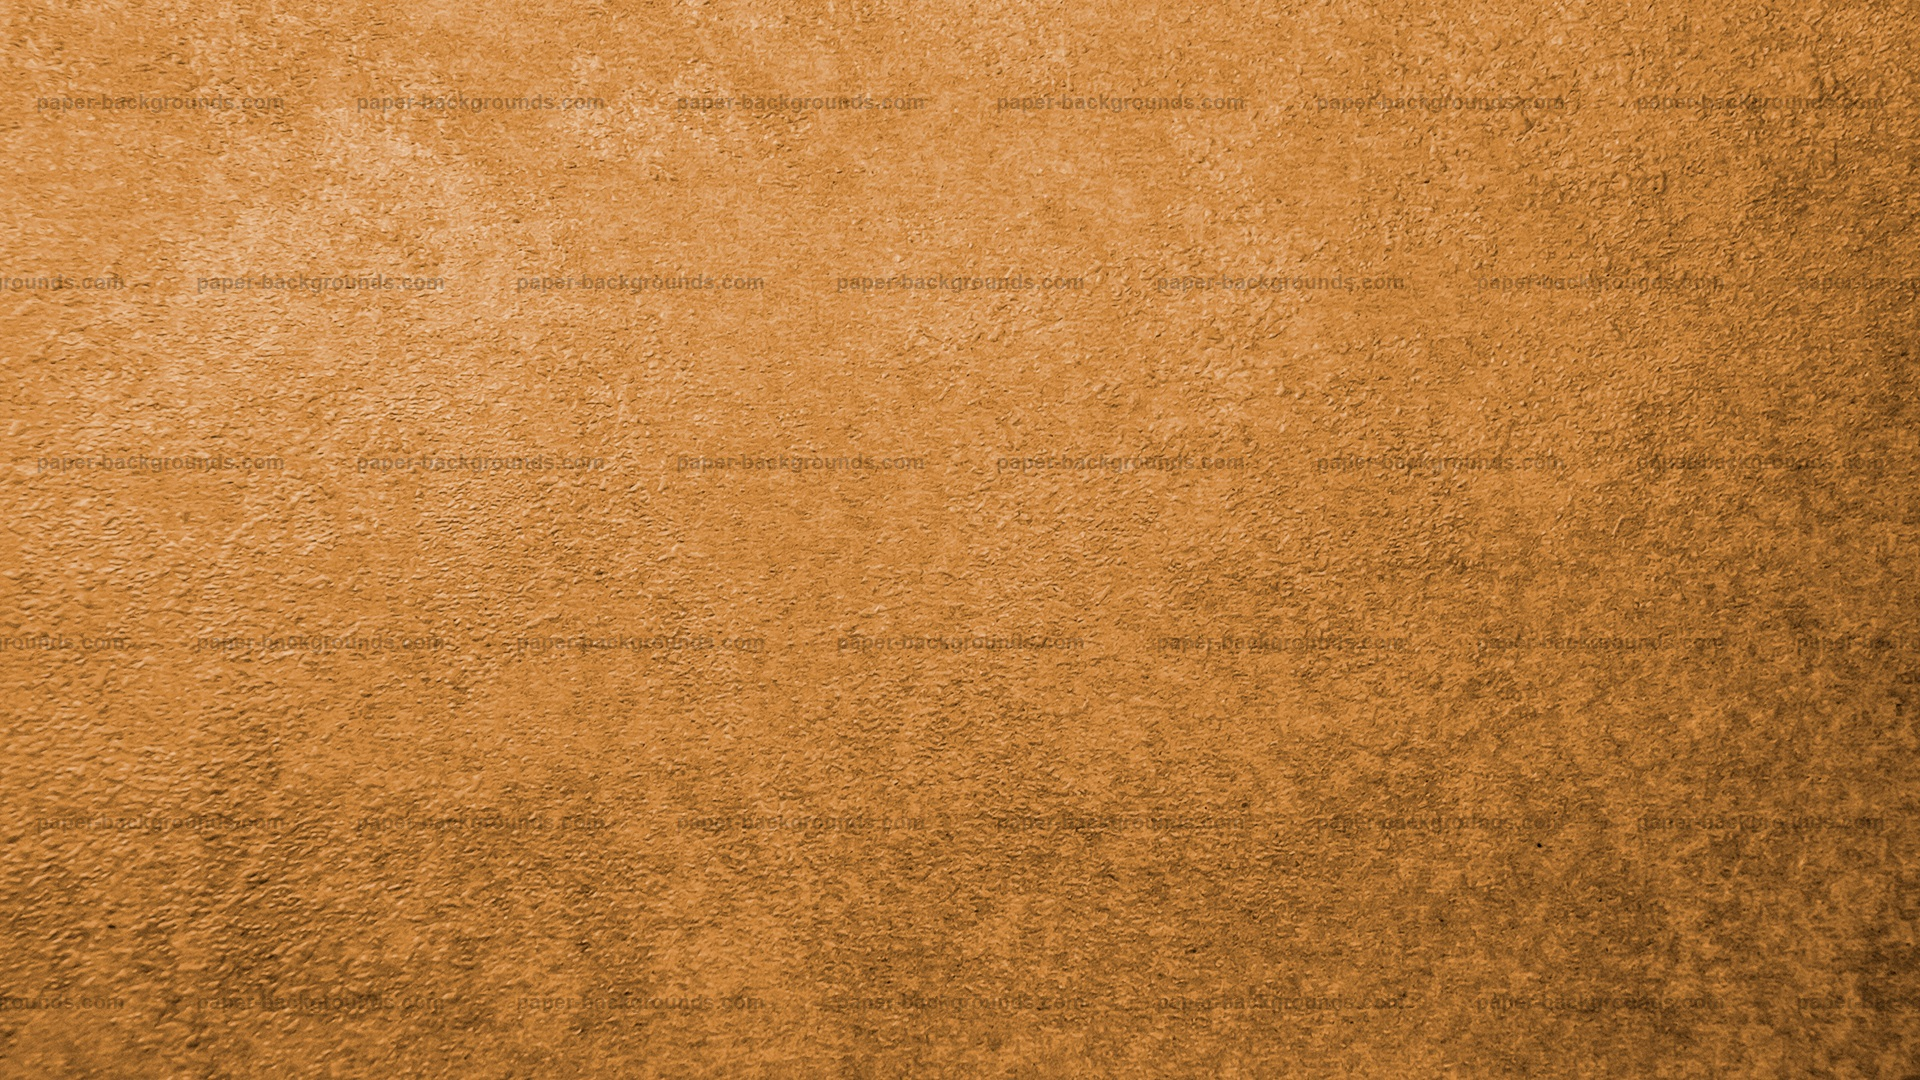 Yellow Gold Wall Texture Vintage Background HD